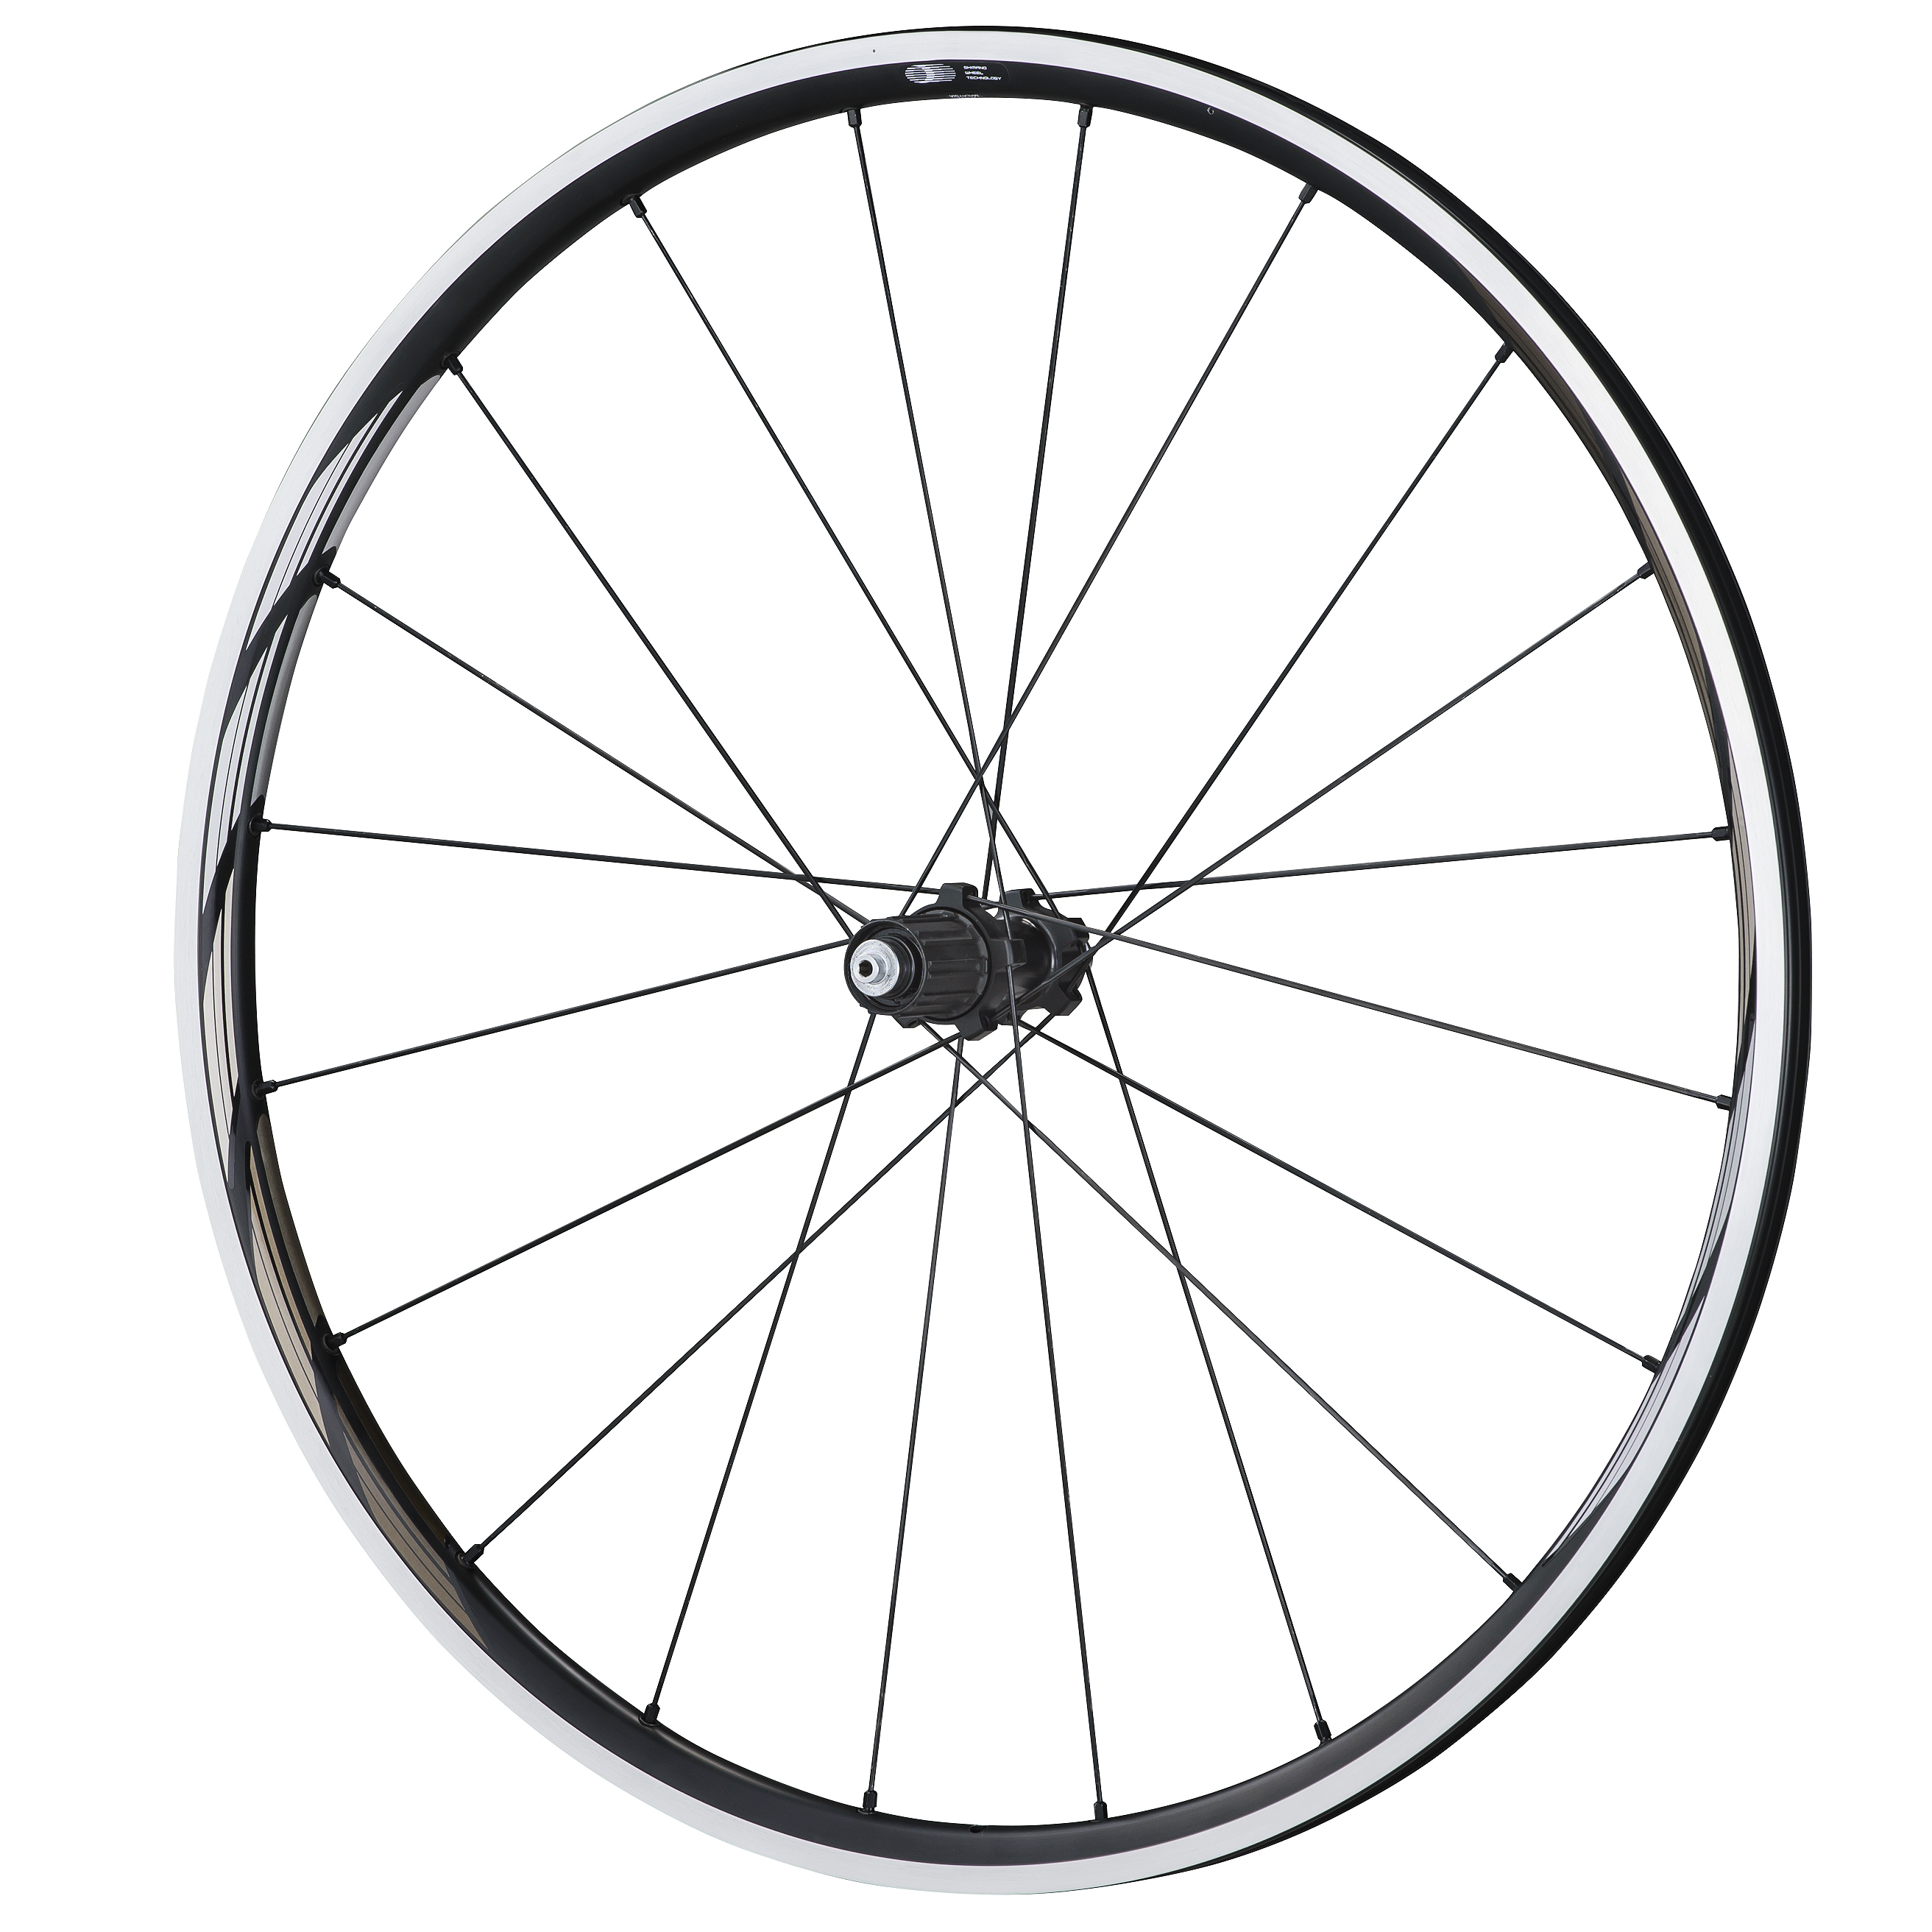 shimano expands 11 speed  tubeless road wheel line